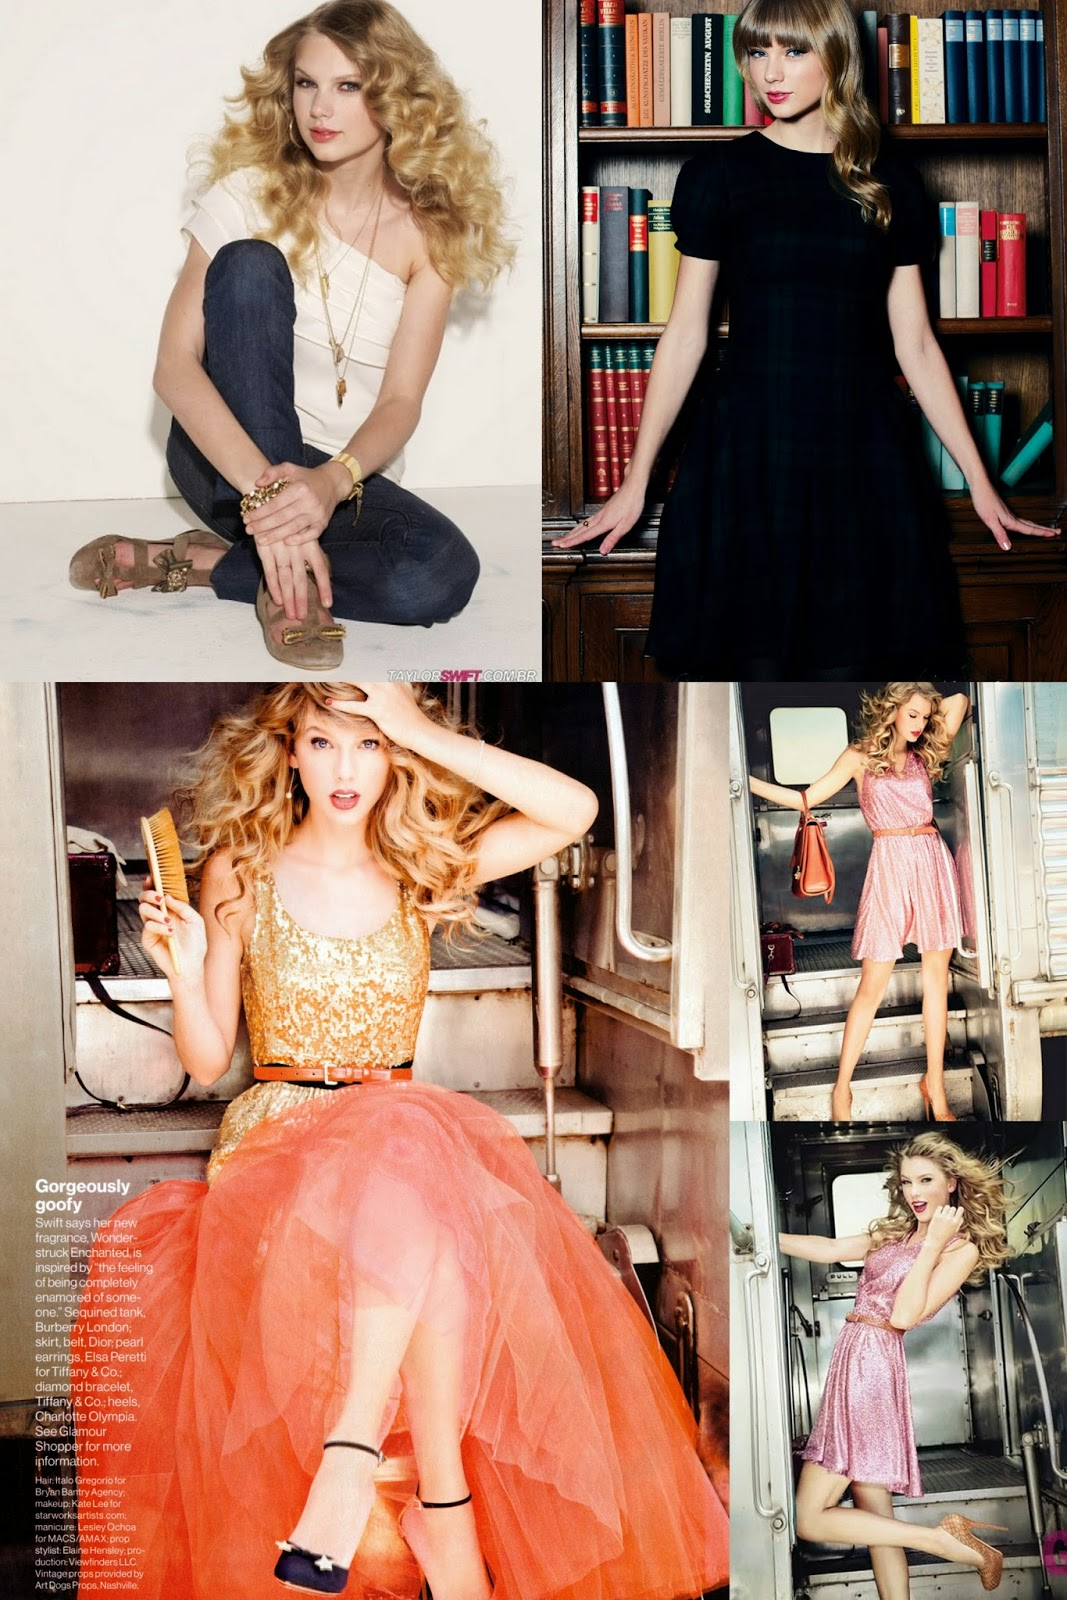 Glamour Magazine Taylor Swift Photoshoot (3) (1707 x 2560)